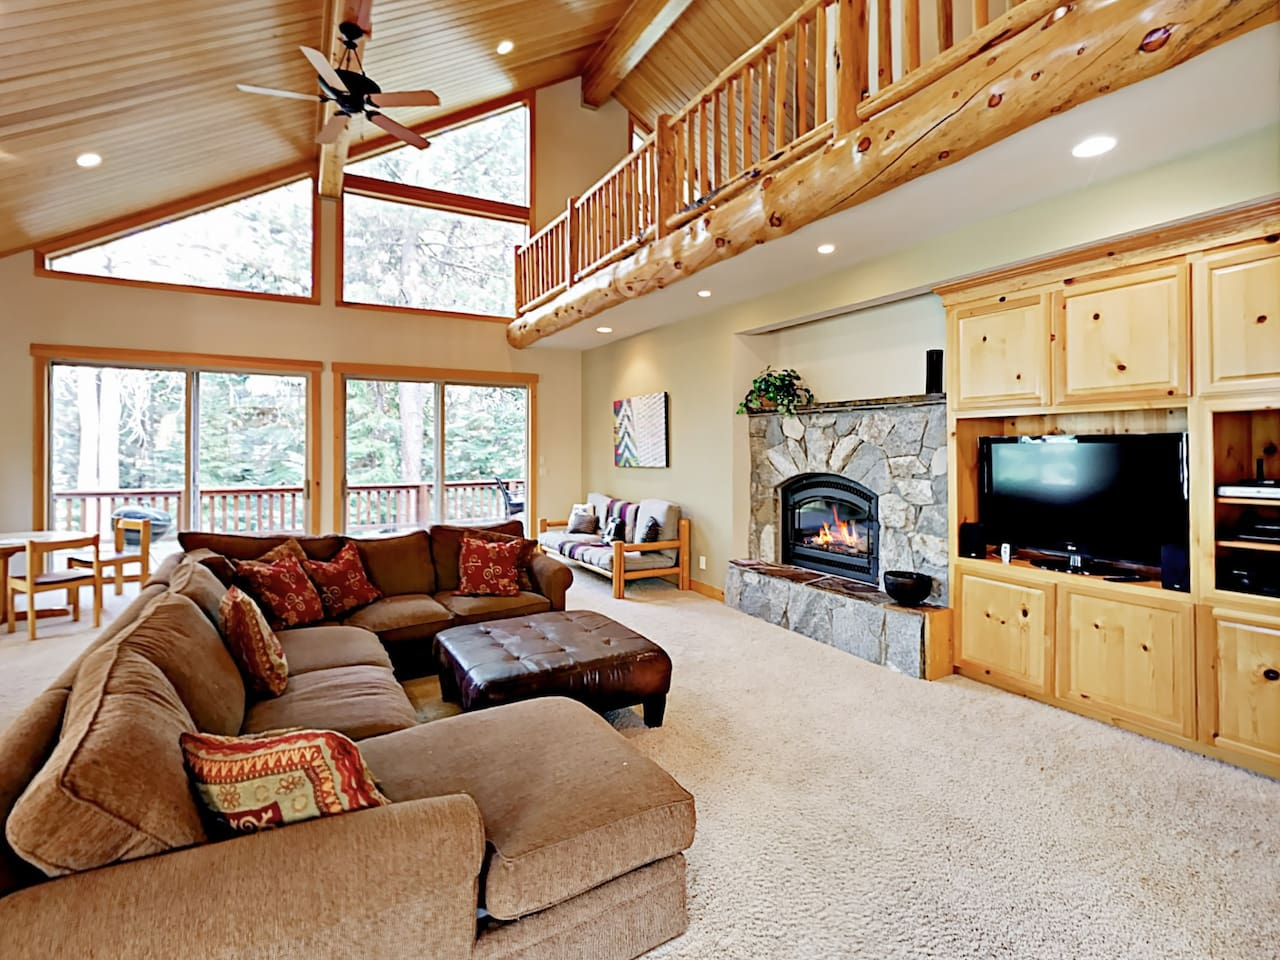 Welcome to Truckee! This spacious home is professionally managed by TurnKey Vacation Rentals.